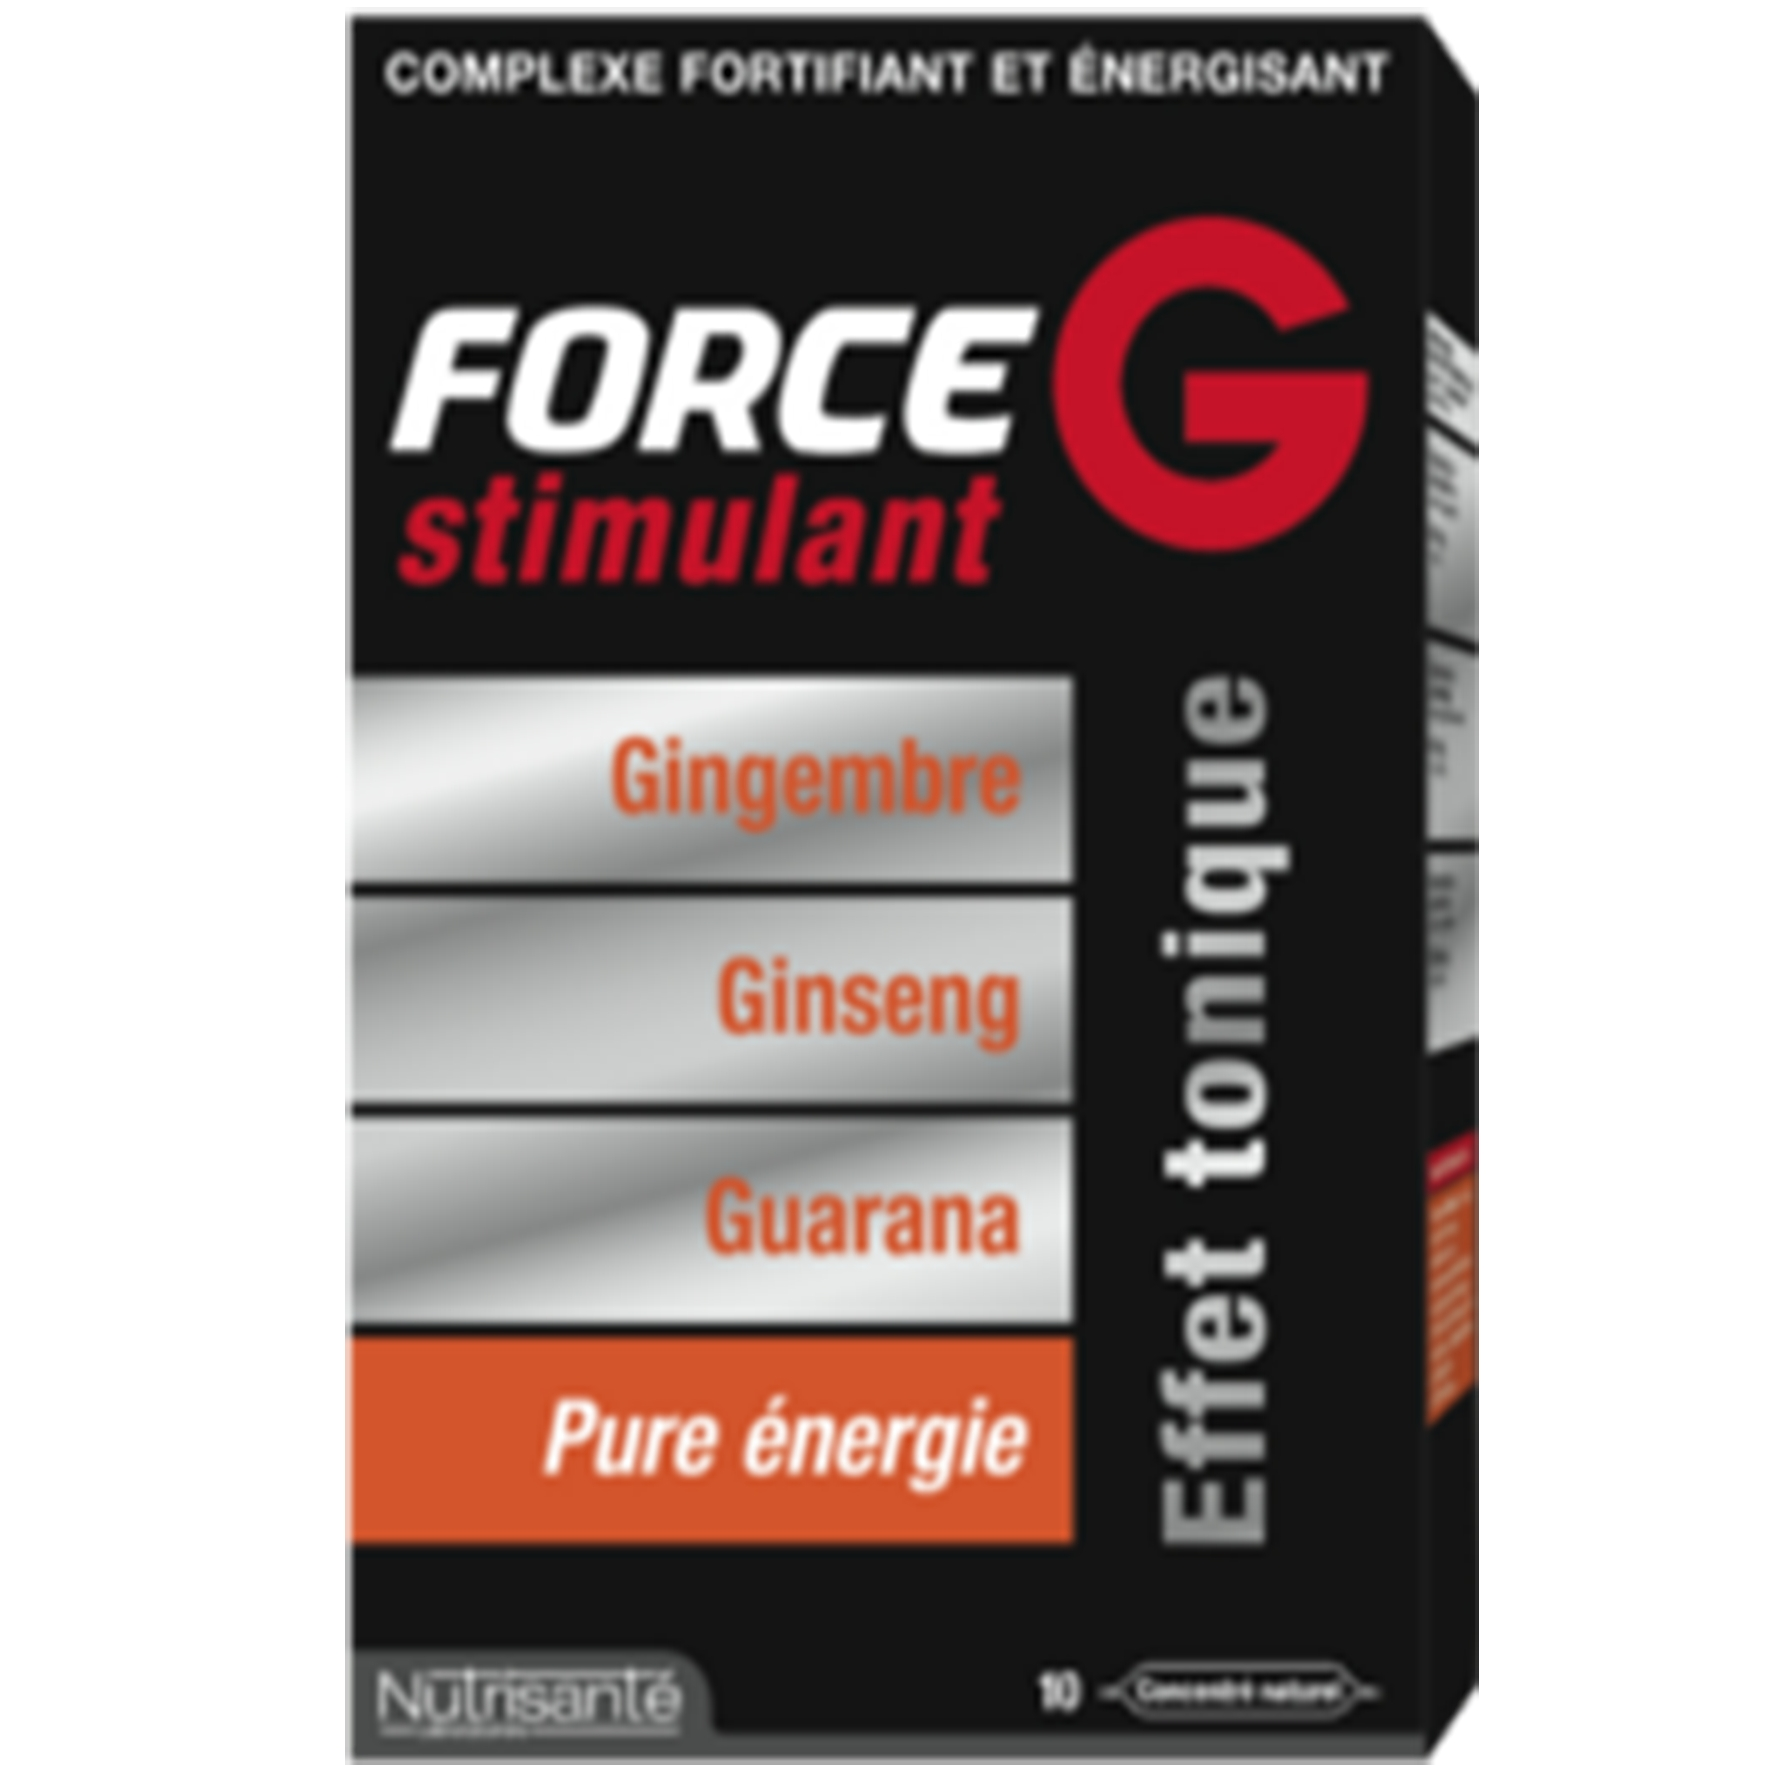 Force G Stimulant